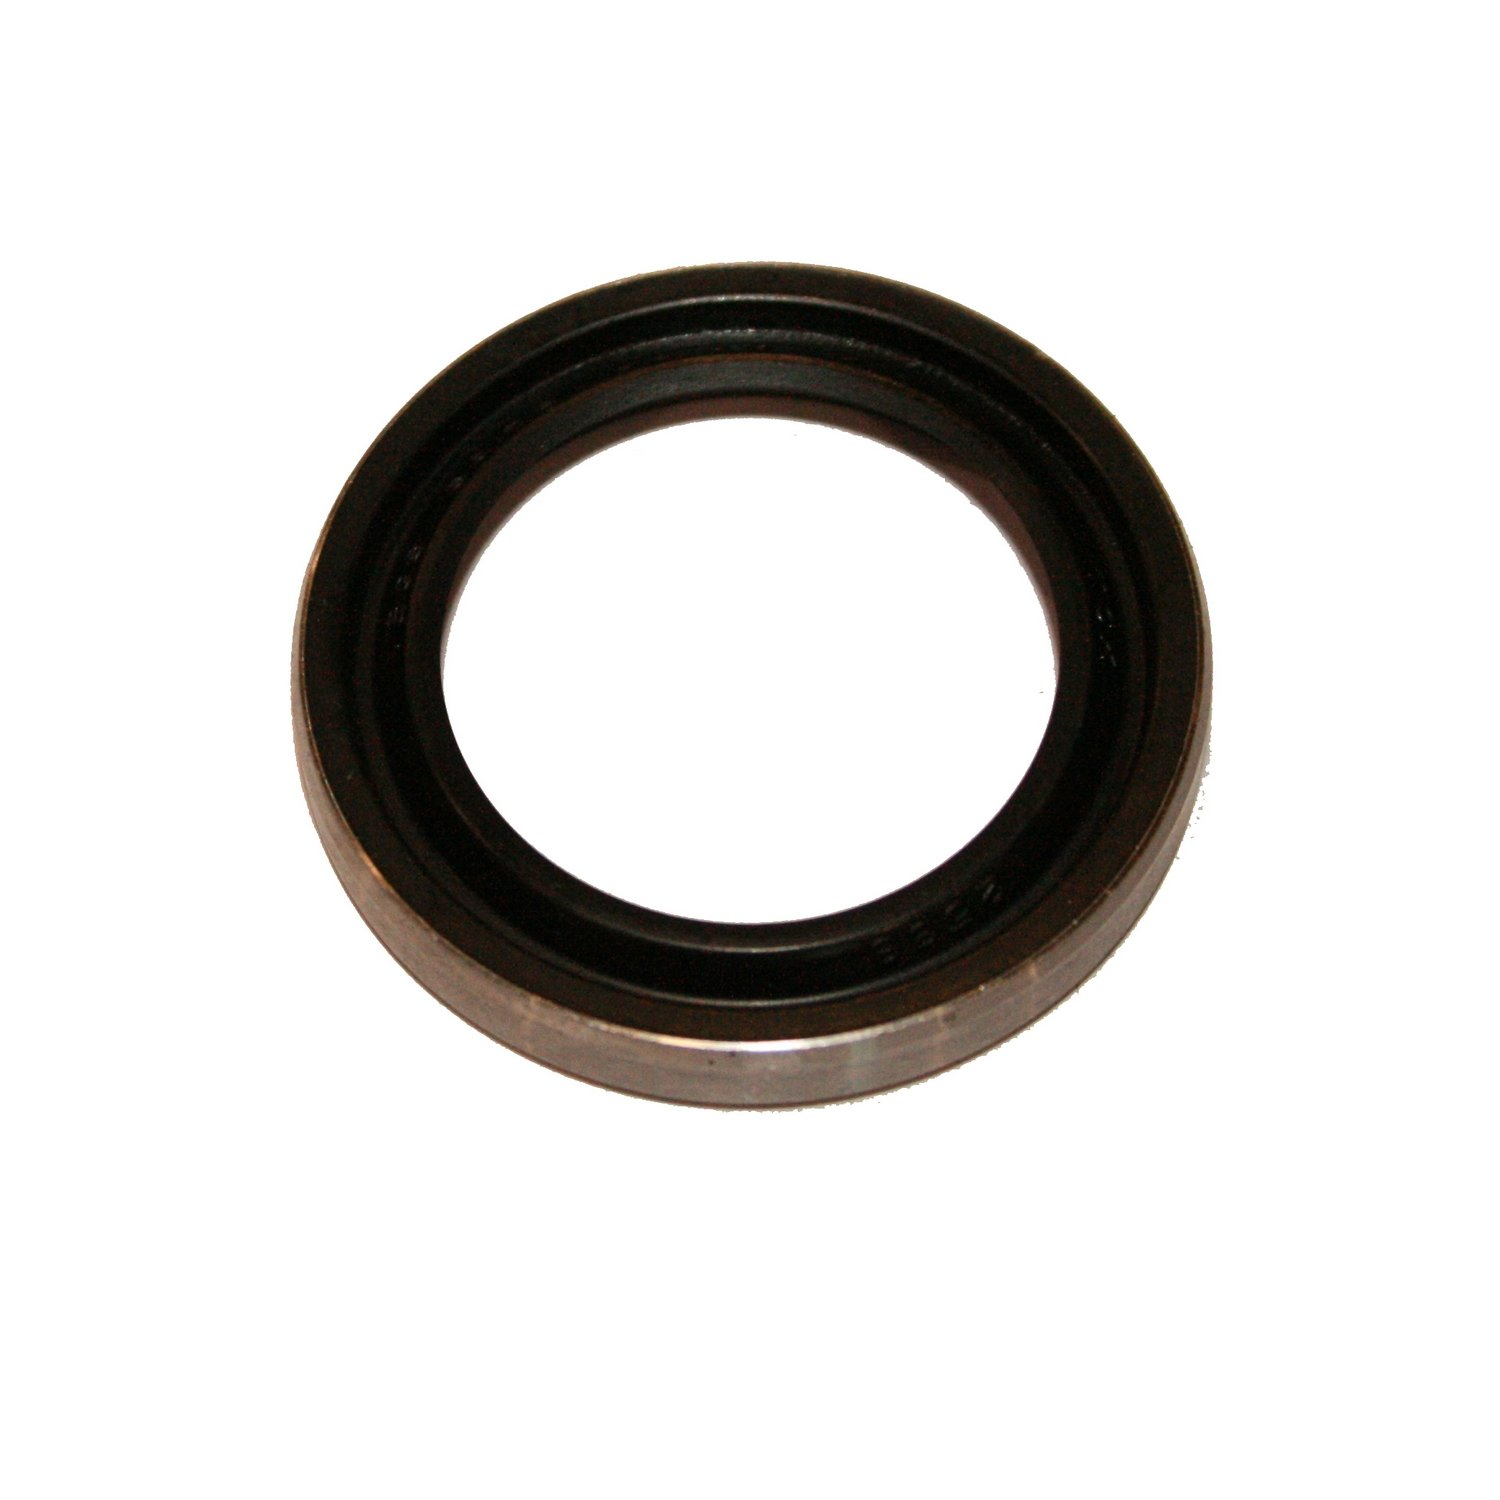 Omix-Ada 18885.03 Manual Transmission Input Shaft Seal Retainer